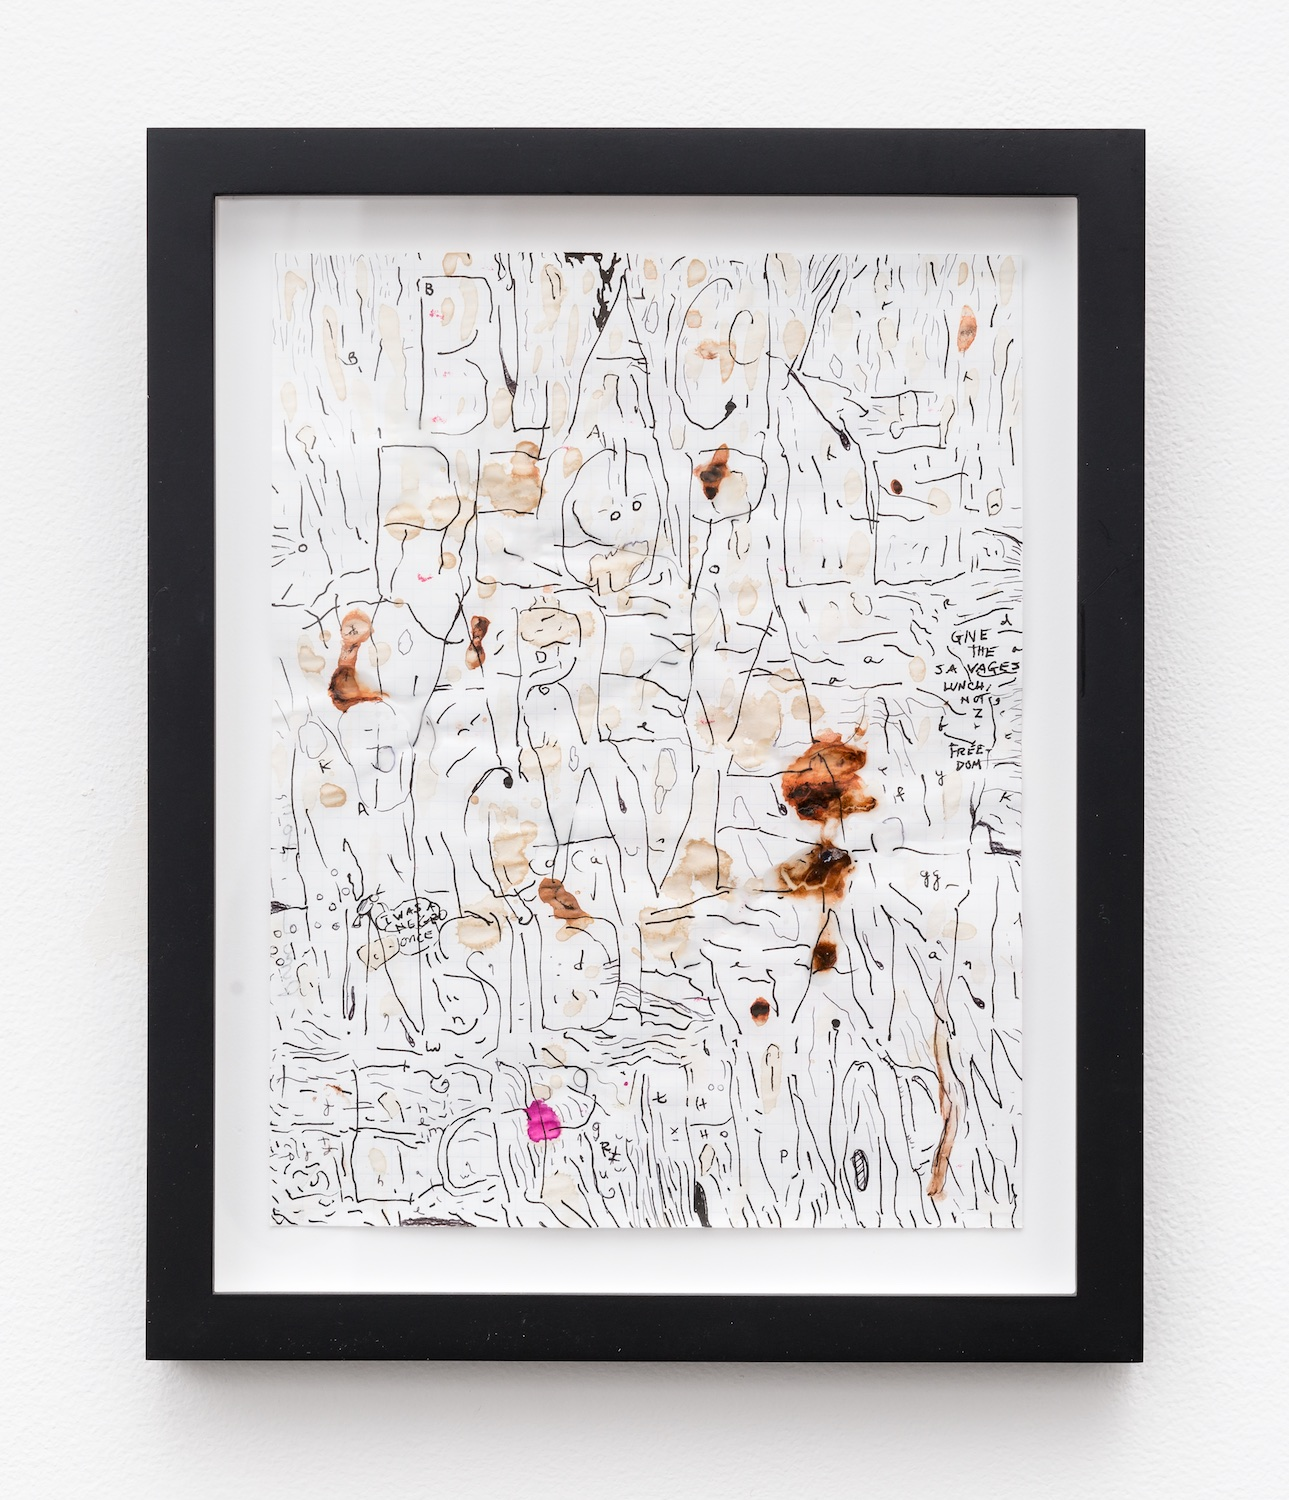 William Pope.L  Black People Are A Cave Inside An Earthworm  2011 Mixed media on paper 11h x 8 ½w in WP001